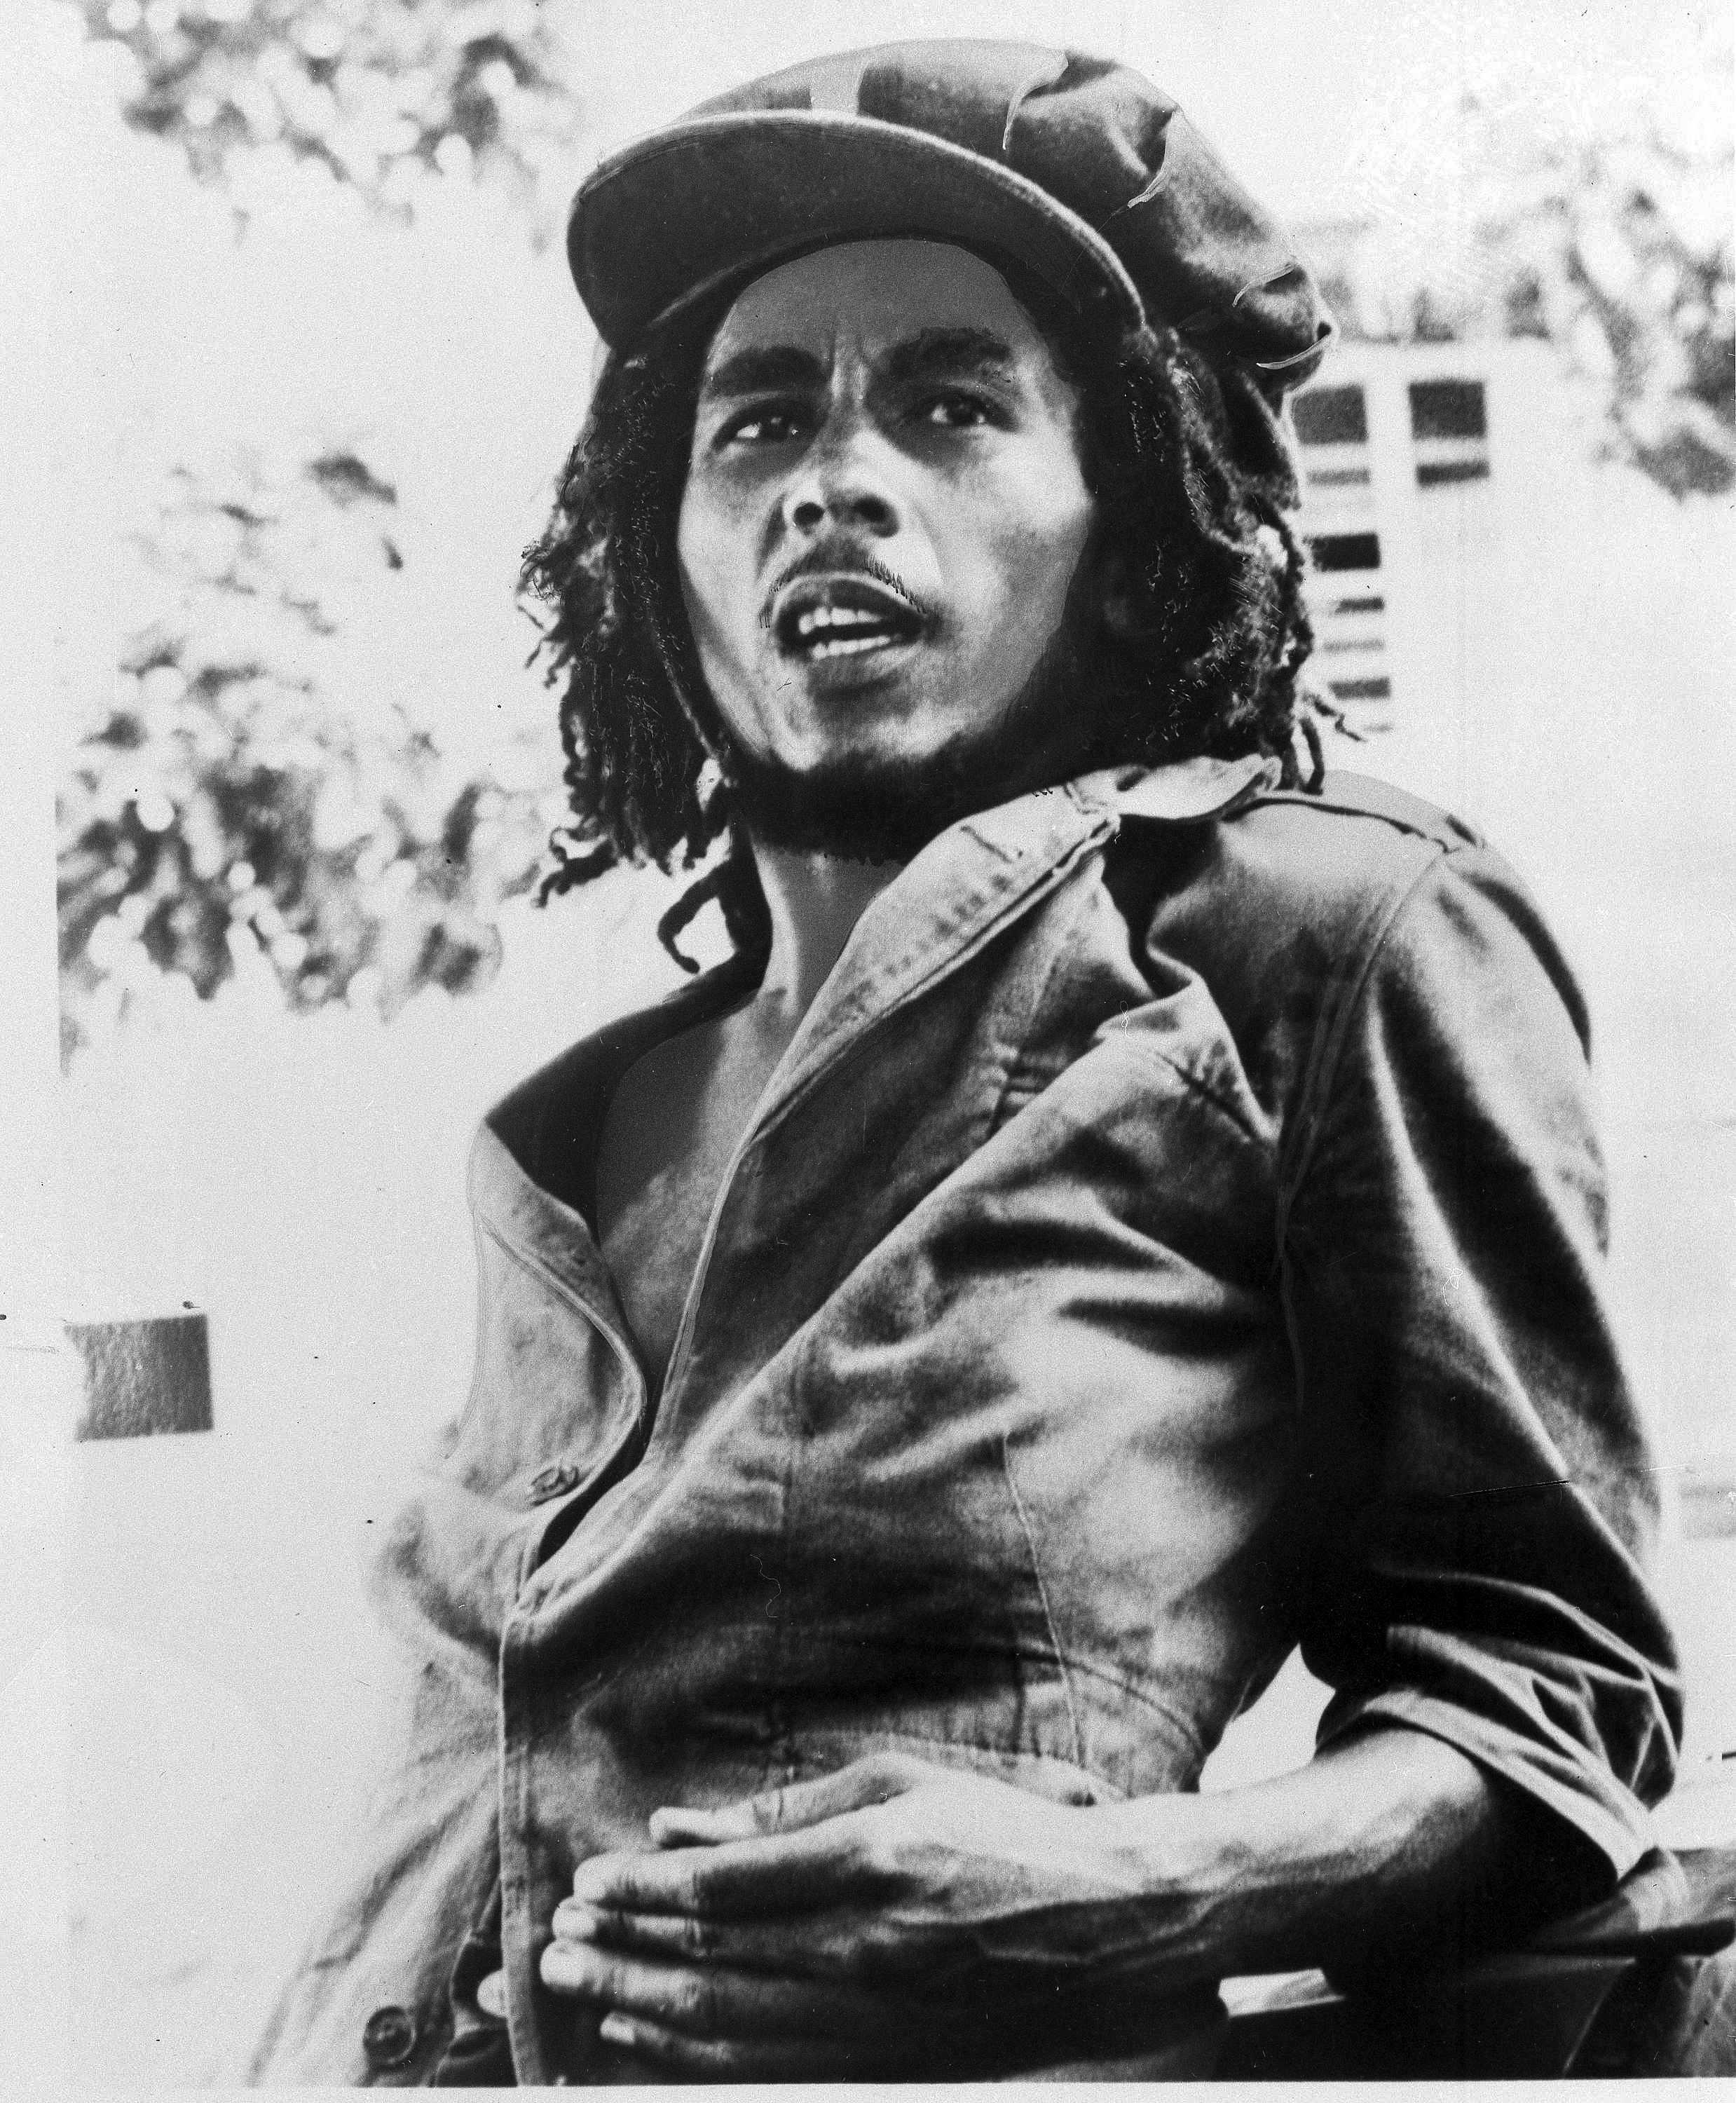 A musical about Bob Marley that uses the Jamaican reggae icon's music is in the works for next year.